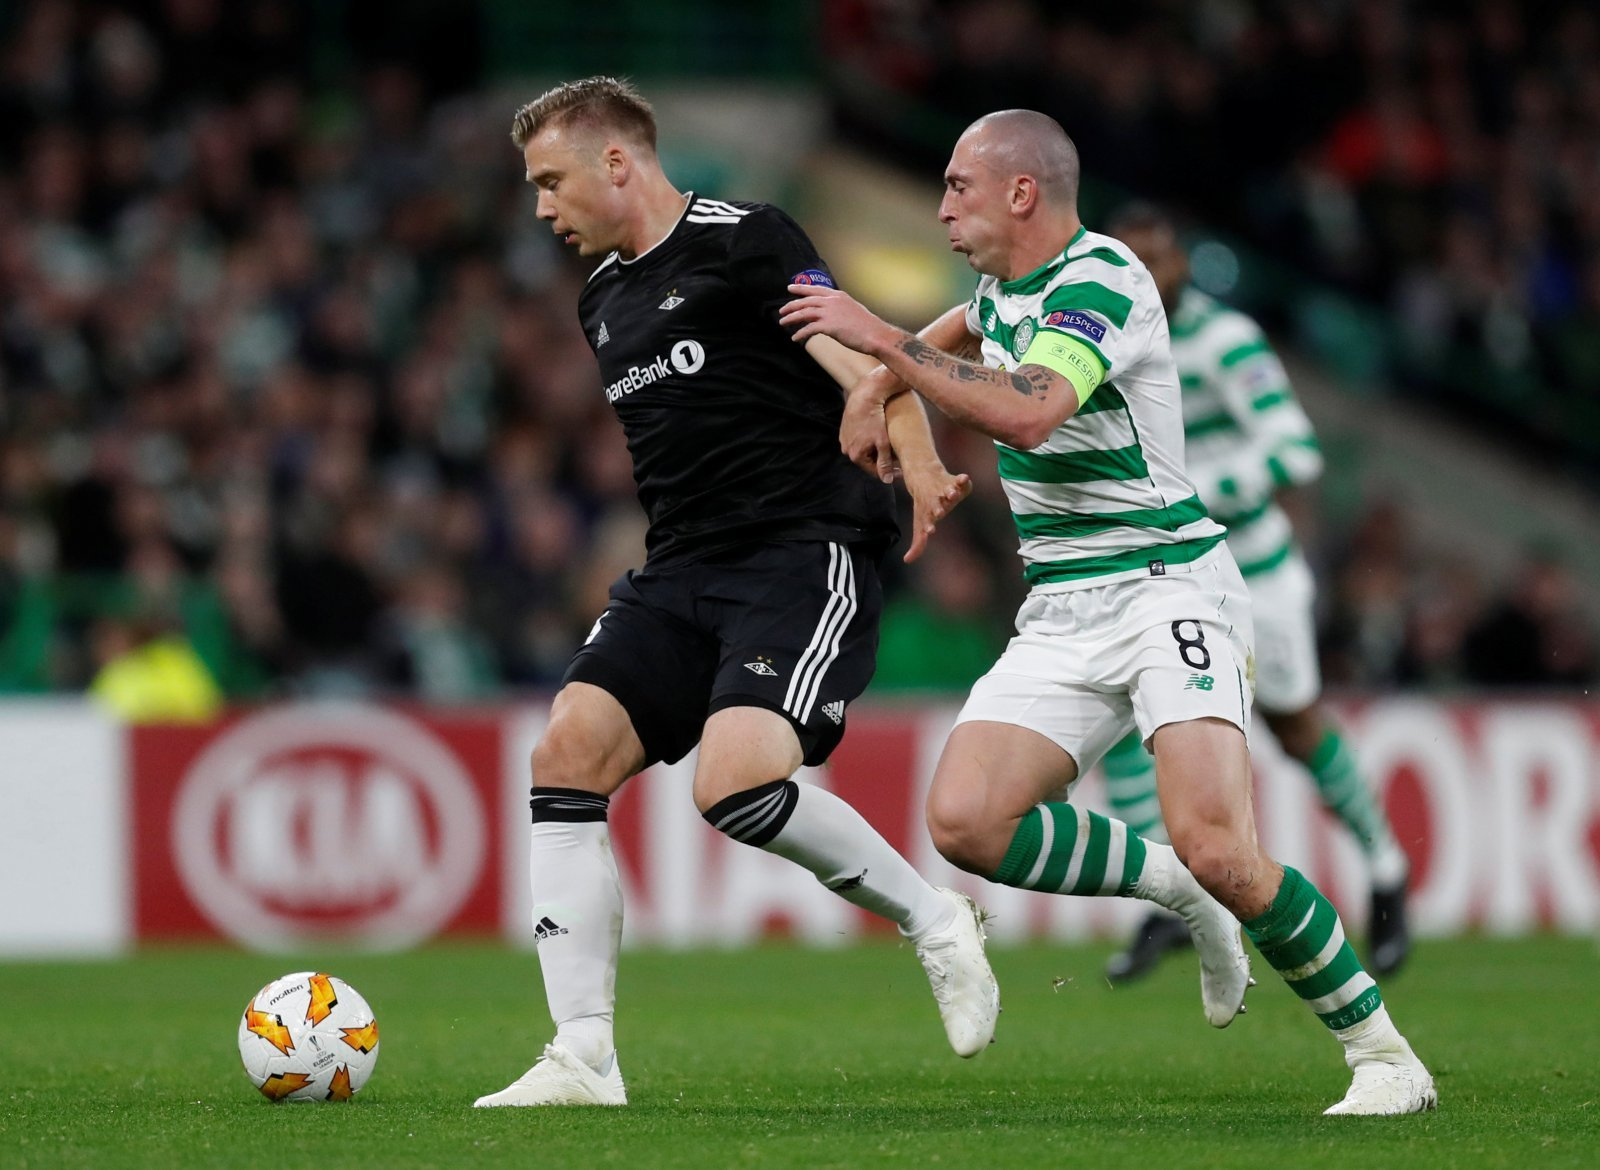 Scott Brown attracting interest from Australia